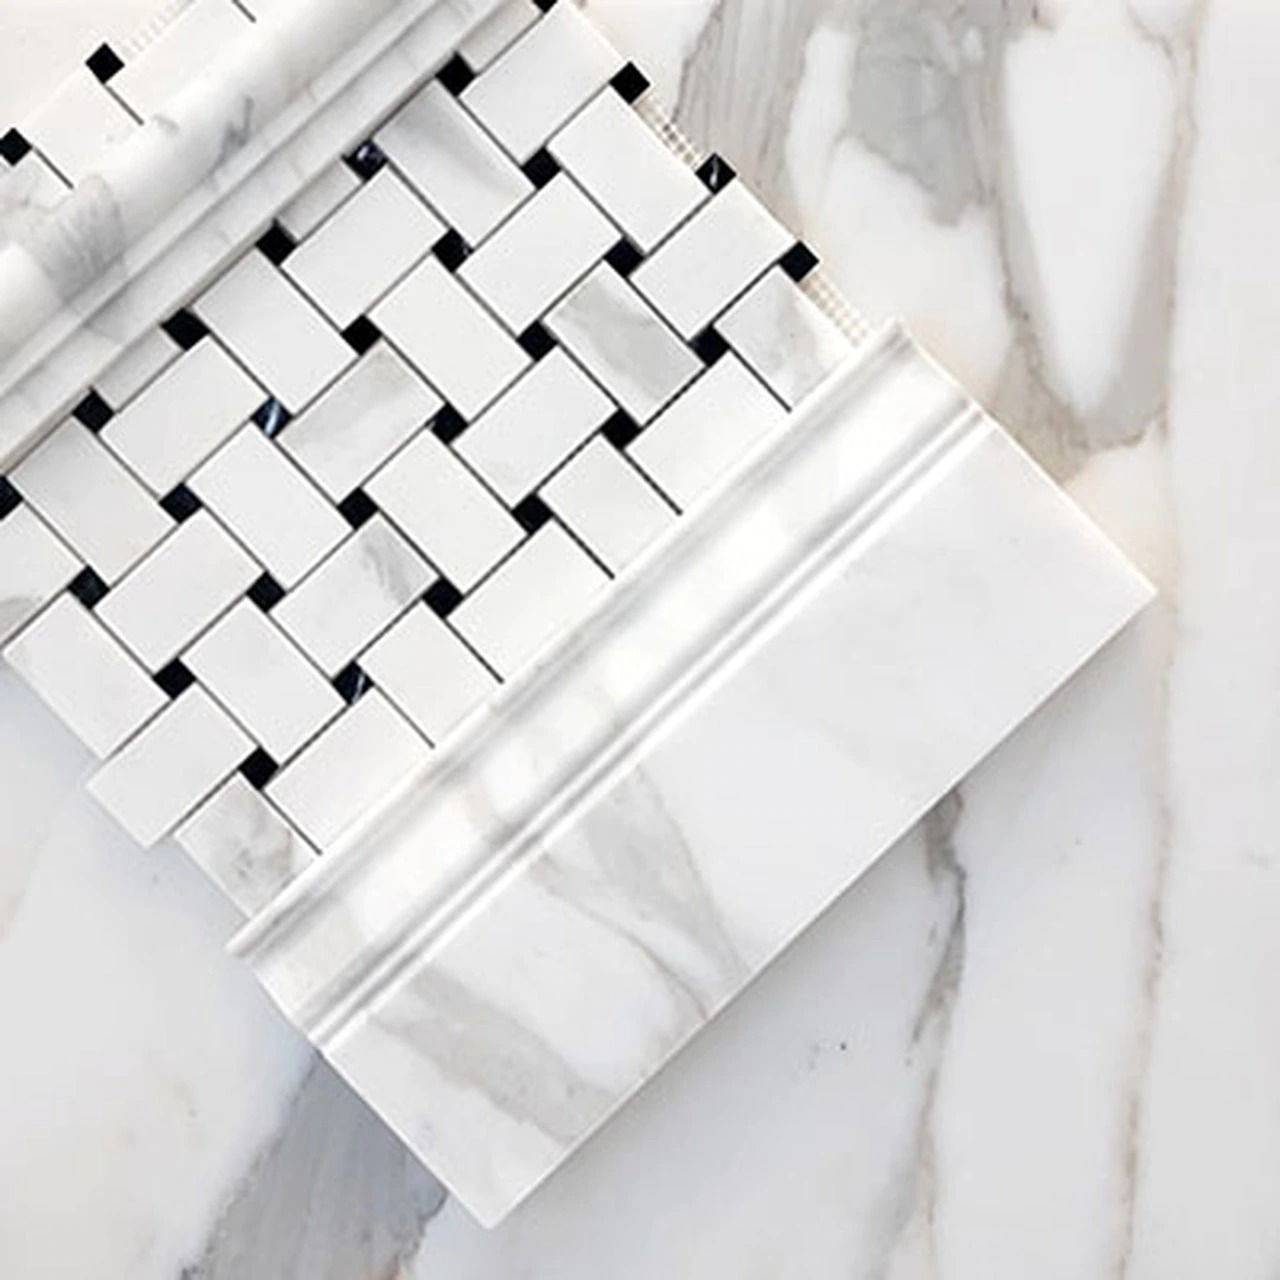 Spotless, Smooth, Glossy Finish, pure White marble trend in 2020